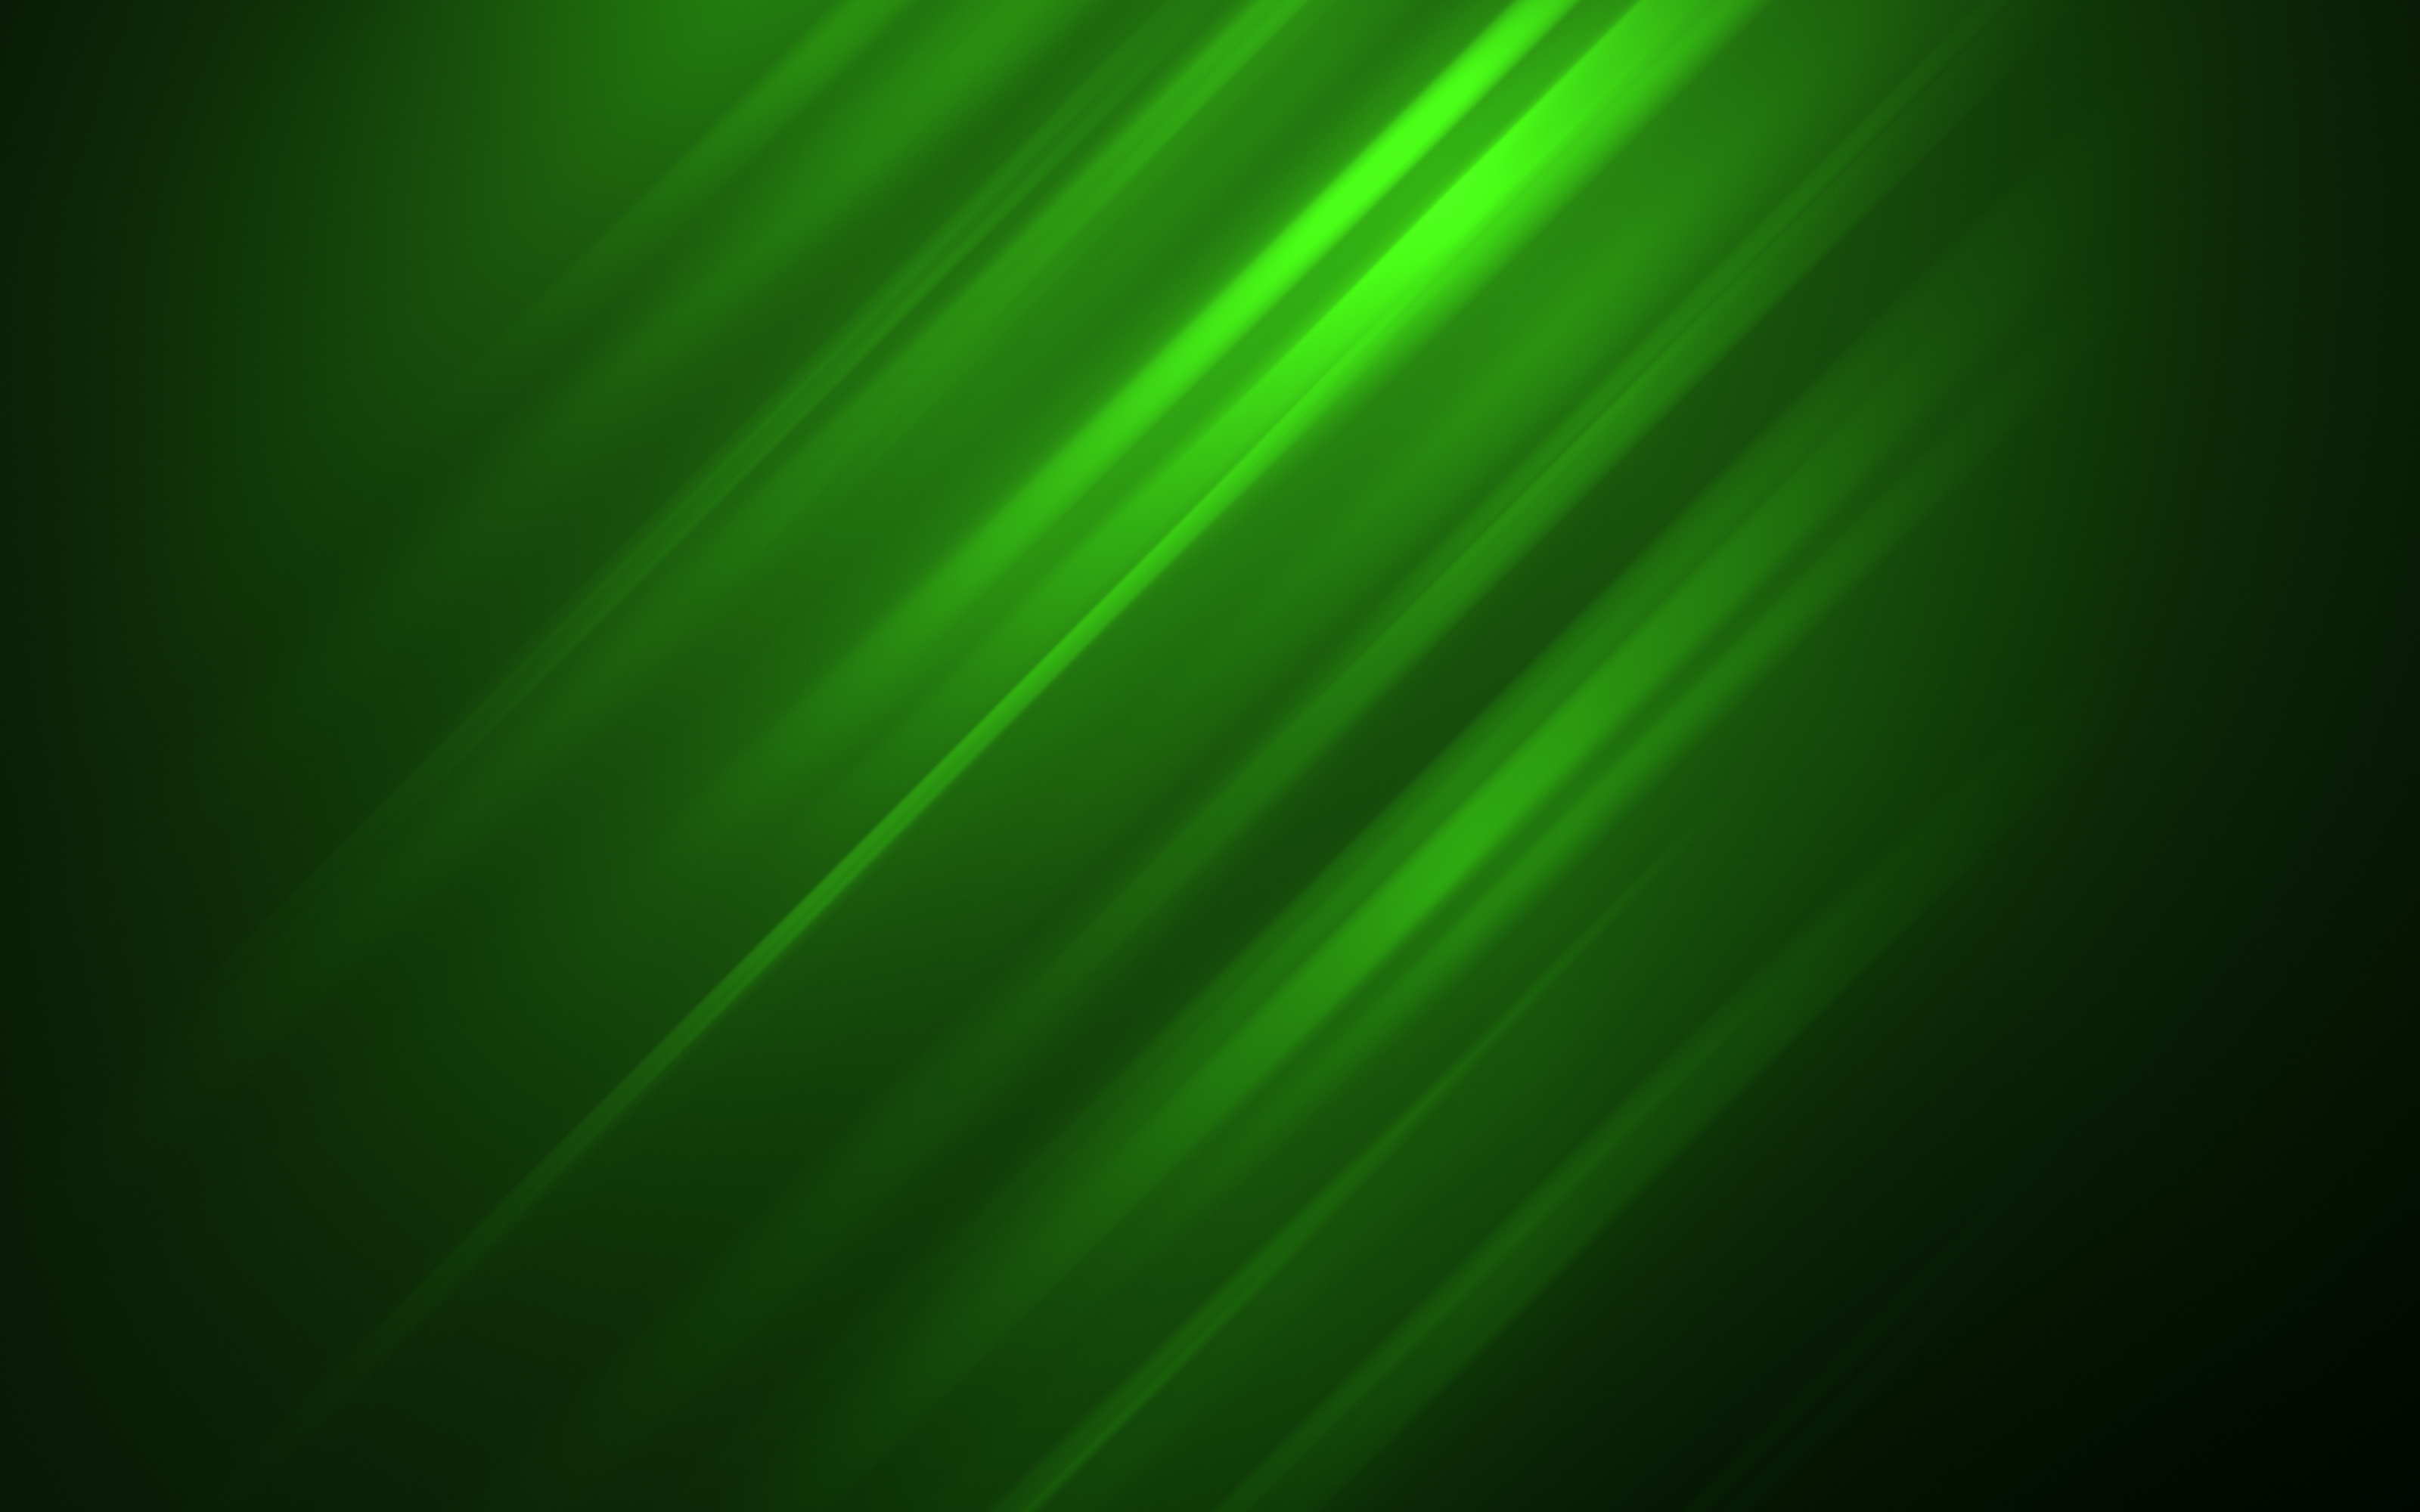 Green Background Design Wallpaper Dark Green Back...